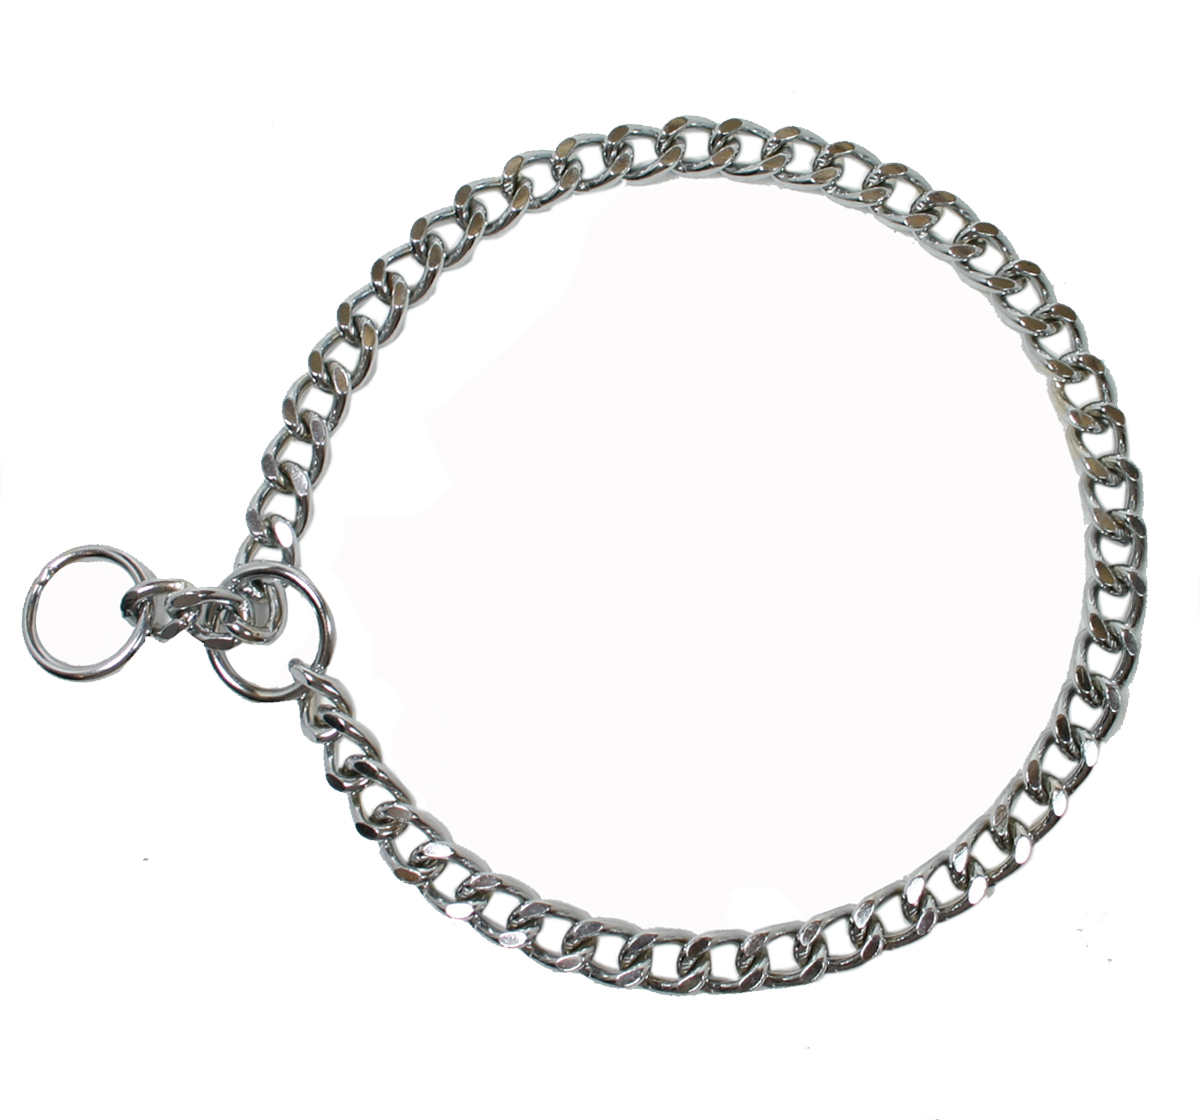 Dog Collar Choke Chain Thick 22 Inches   DogSpot - Online ...